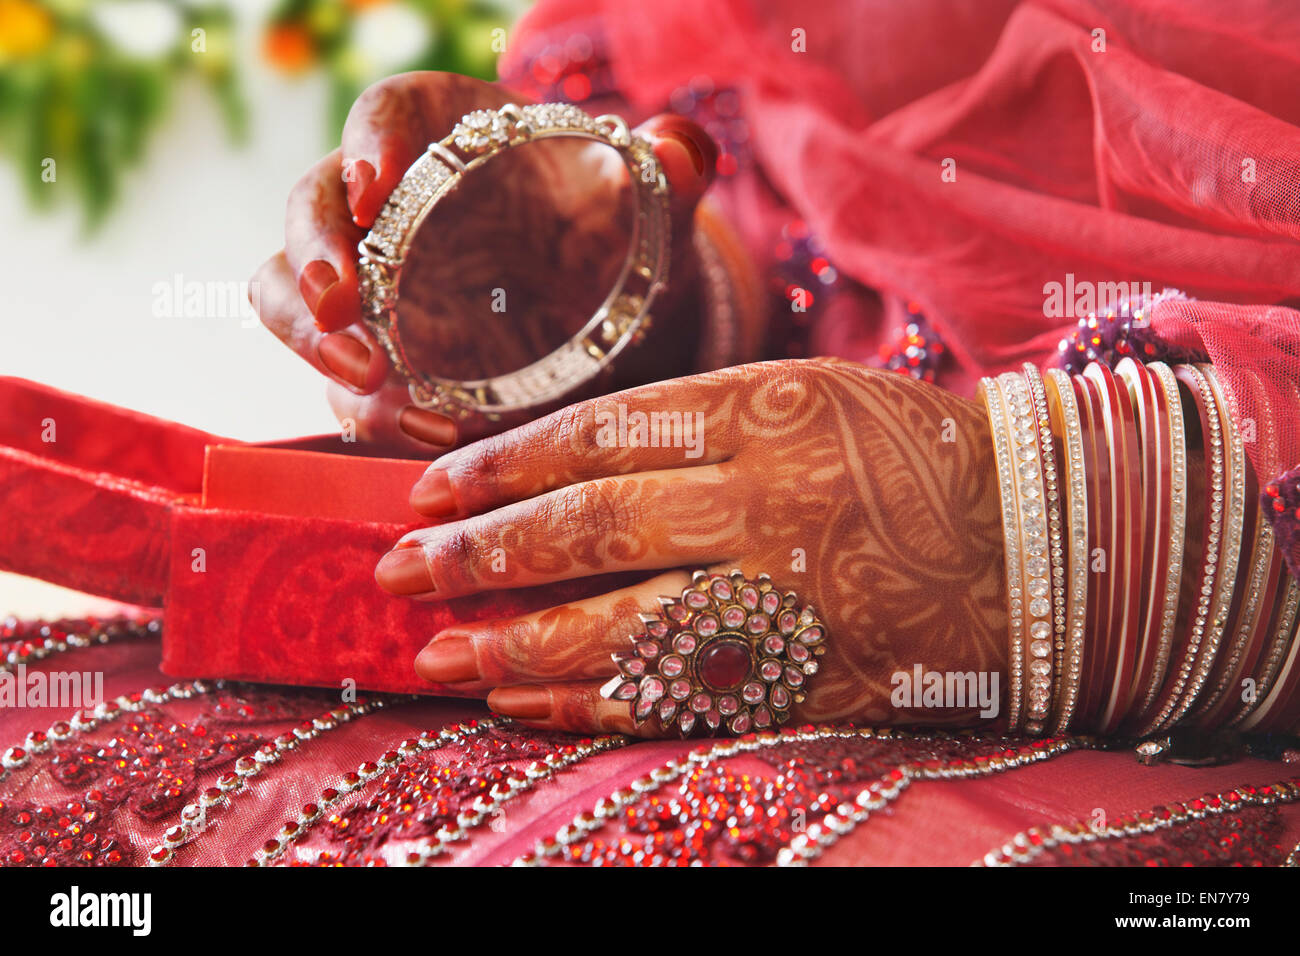 Close-up of a Brides hands holding bangle - Stock Image